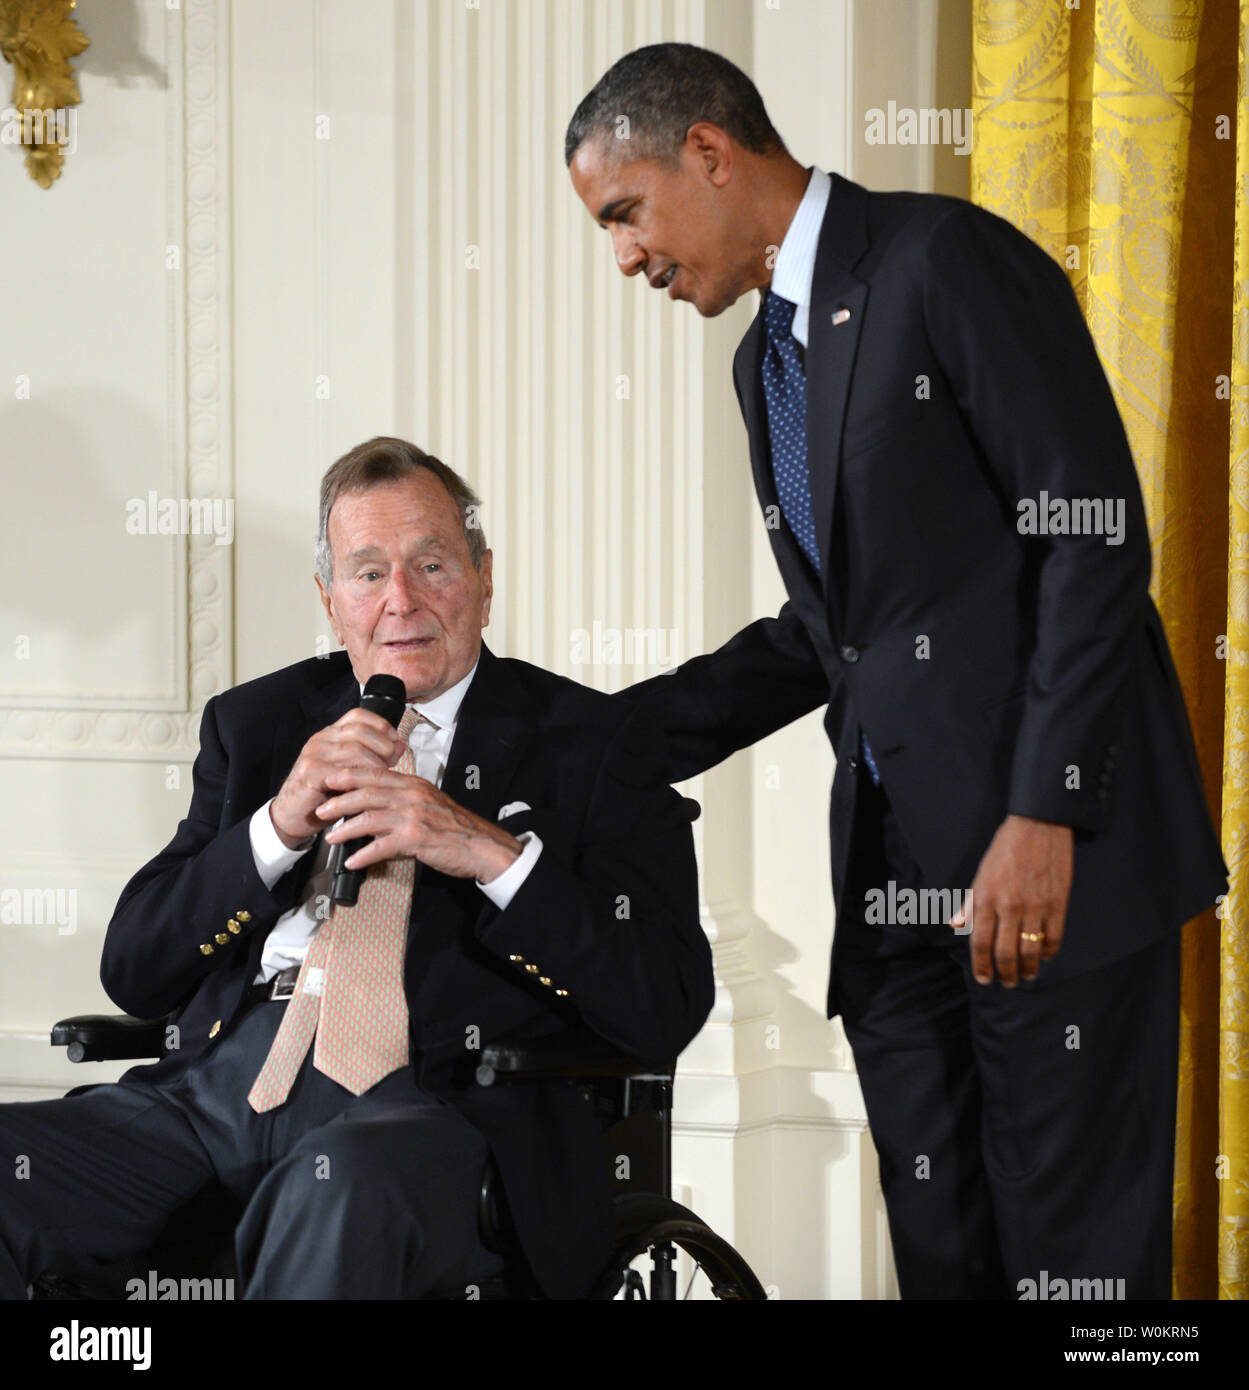 Former President George H.W. Bush makes some brief remarks during the presentation of the 5,000th 'Points of Light' Foundation award with President Barack Obama in the East Room of the White House in Washington, DC on July 15, 2013.  Bush started the national movement to advance volunteerism and community service 20 years ago when he was the 41st president.  Kathy Hamilton and Floyd Hammer won the award.   UPI/Pat Benic - Stock Image